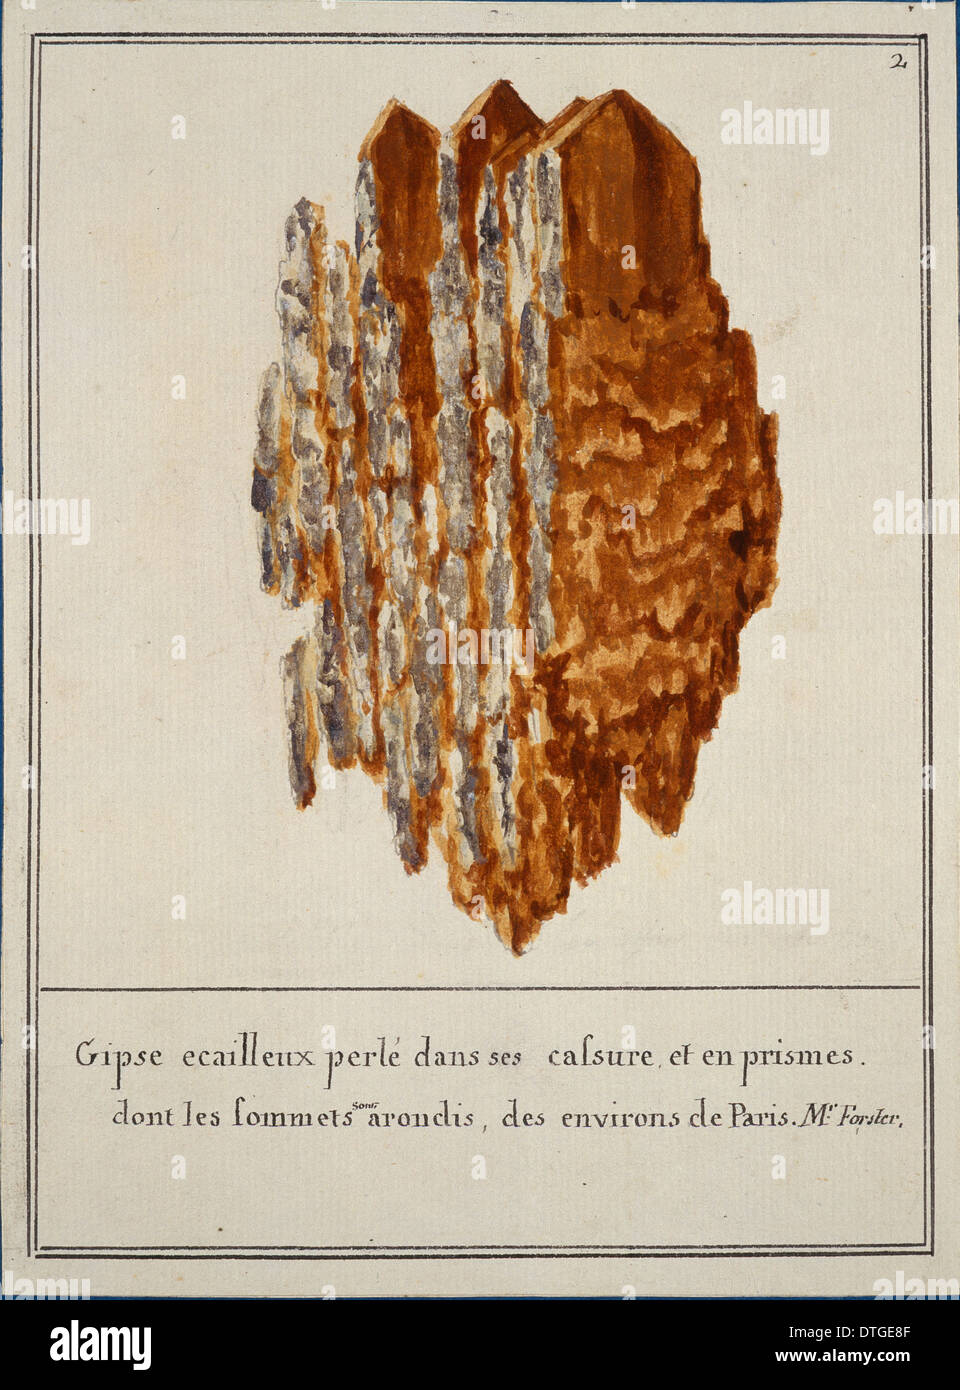 Plate 2 from Mineralogie Volume 1 (1790) by Swebach Desfontaines - Stock Image